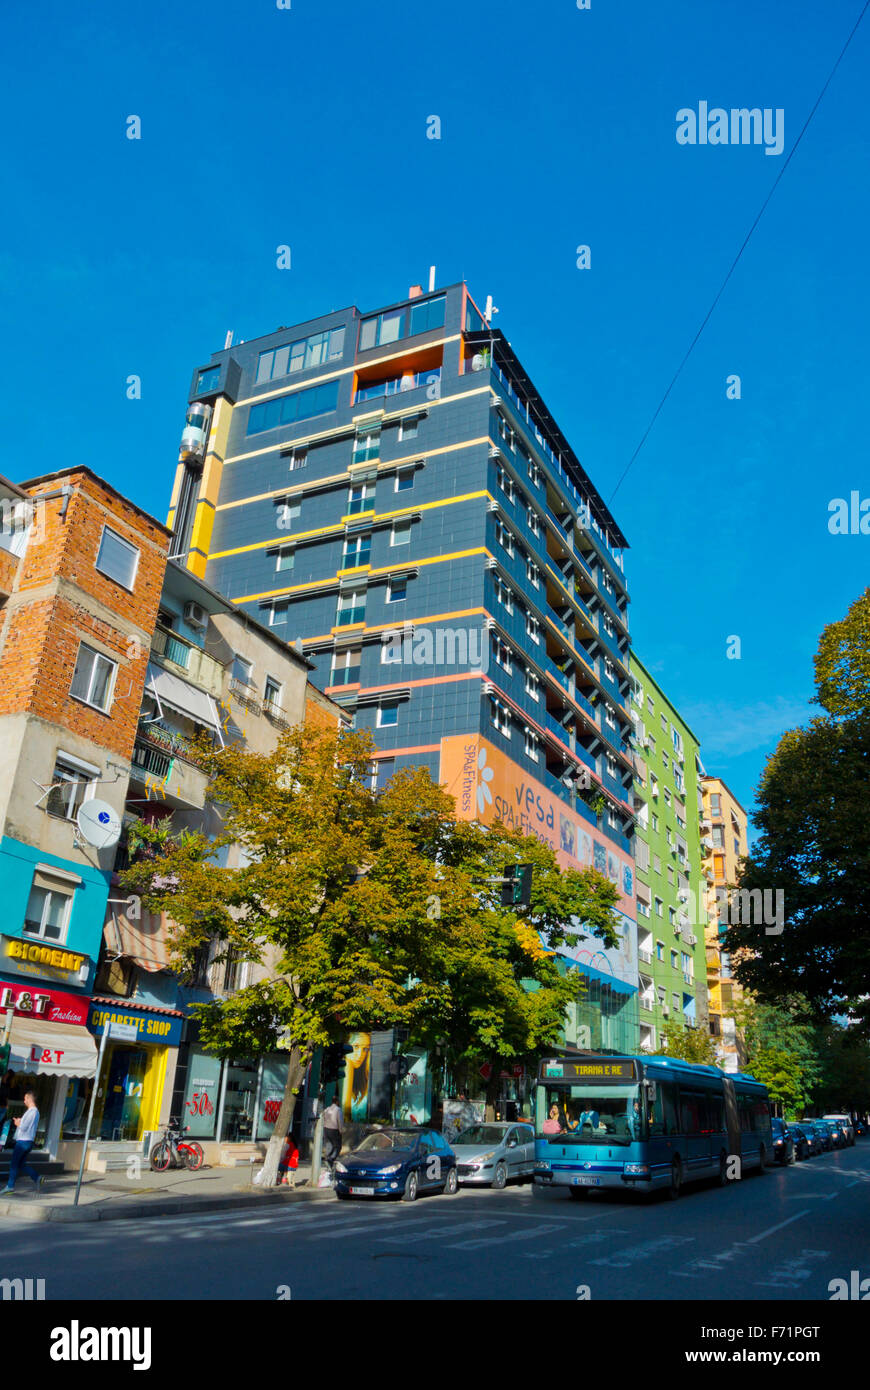 Rruga Abdyl Frasheri street, with Vesa center spa, Blloku district, Tirana, Albania - Stock Image